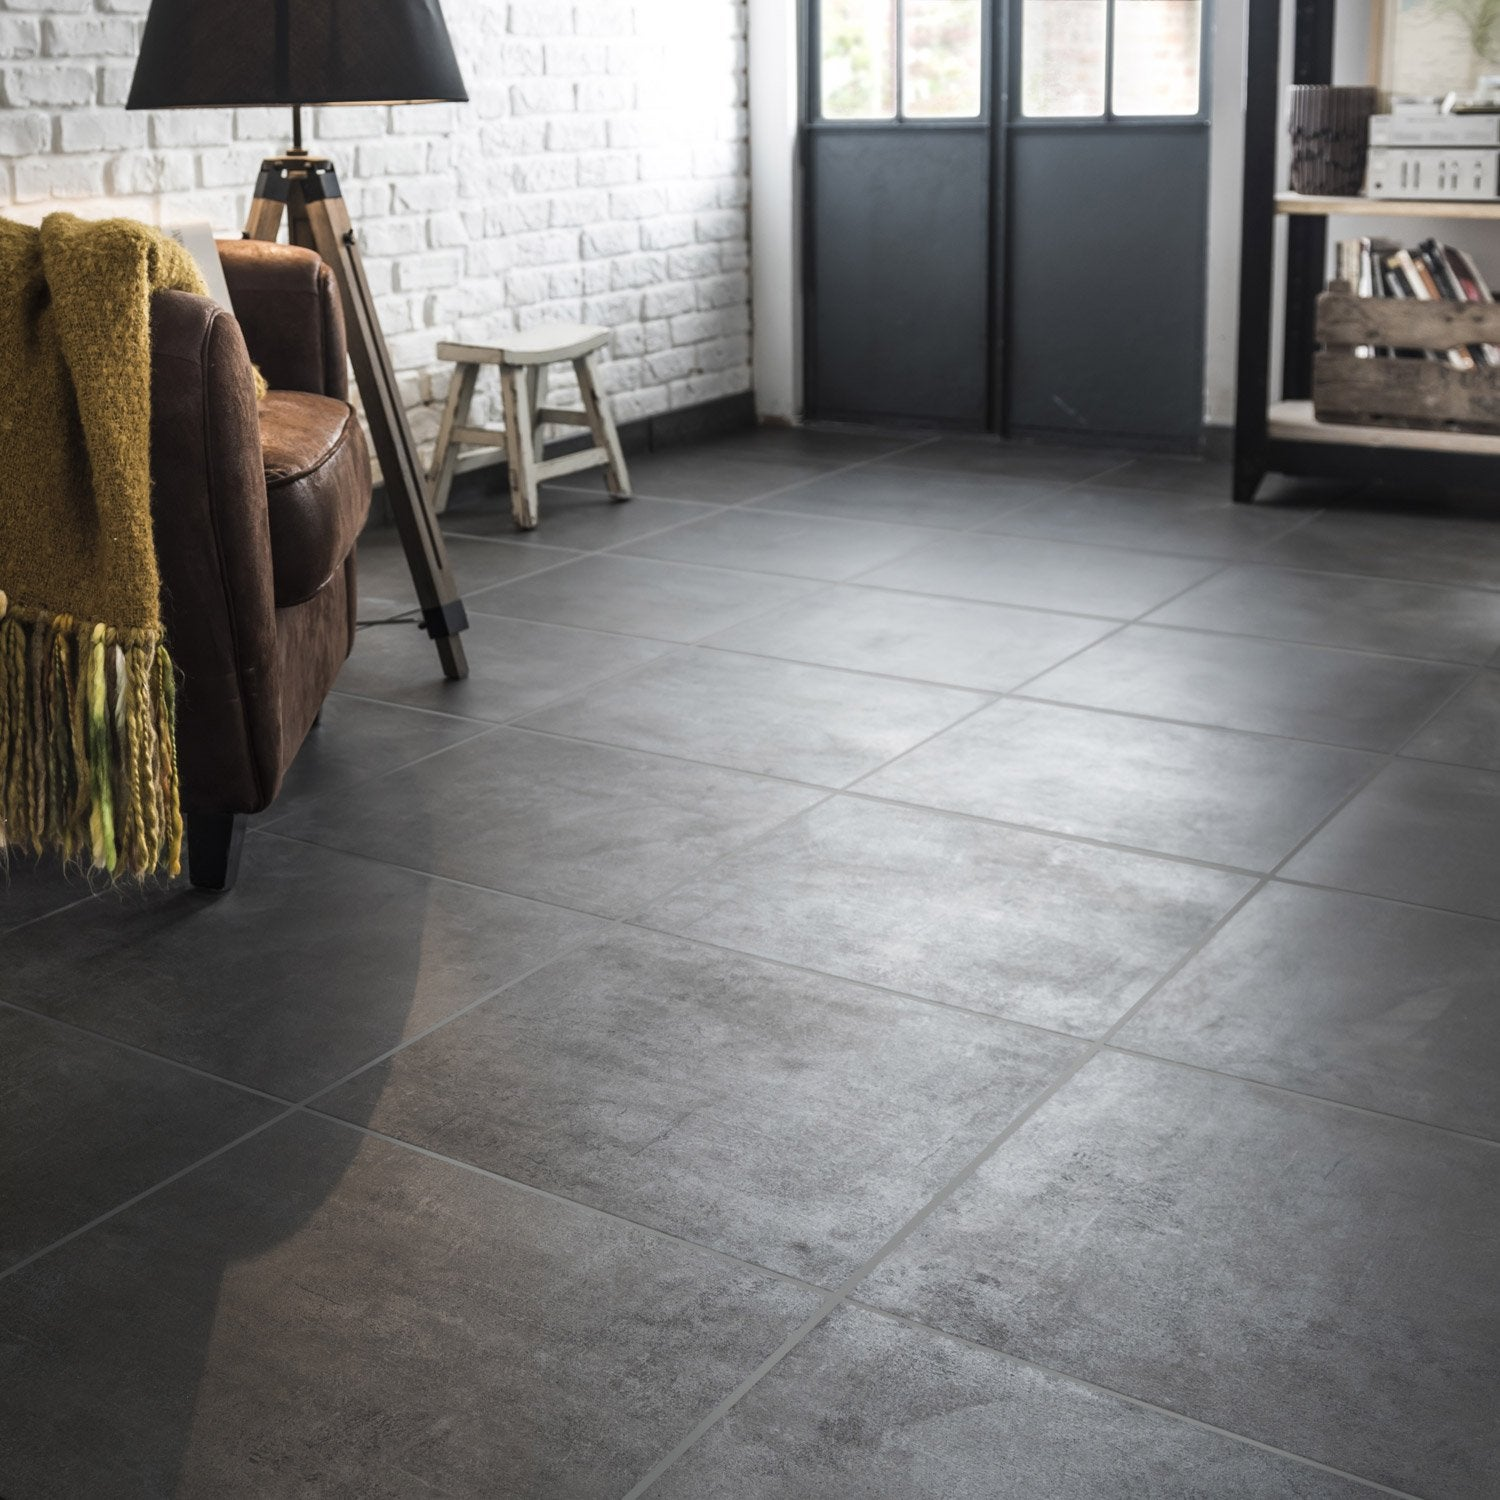 Carrelage sol anthracite effet b ton alma x cm for Carrelage 60x60 gris anthracite